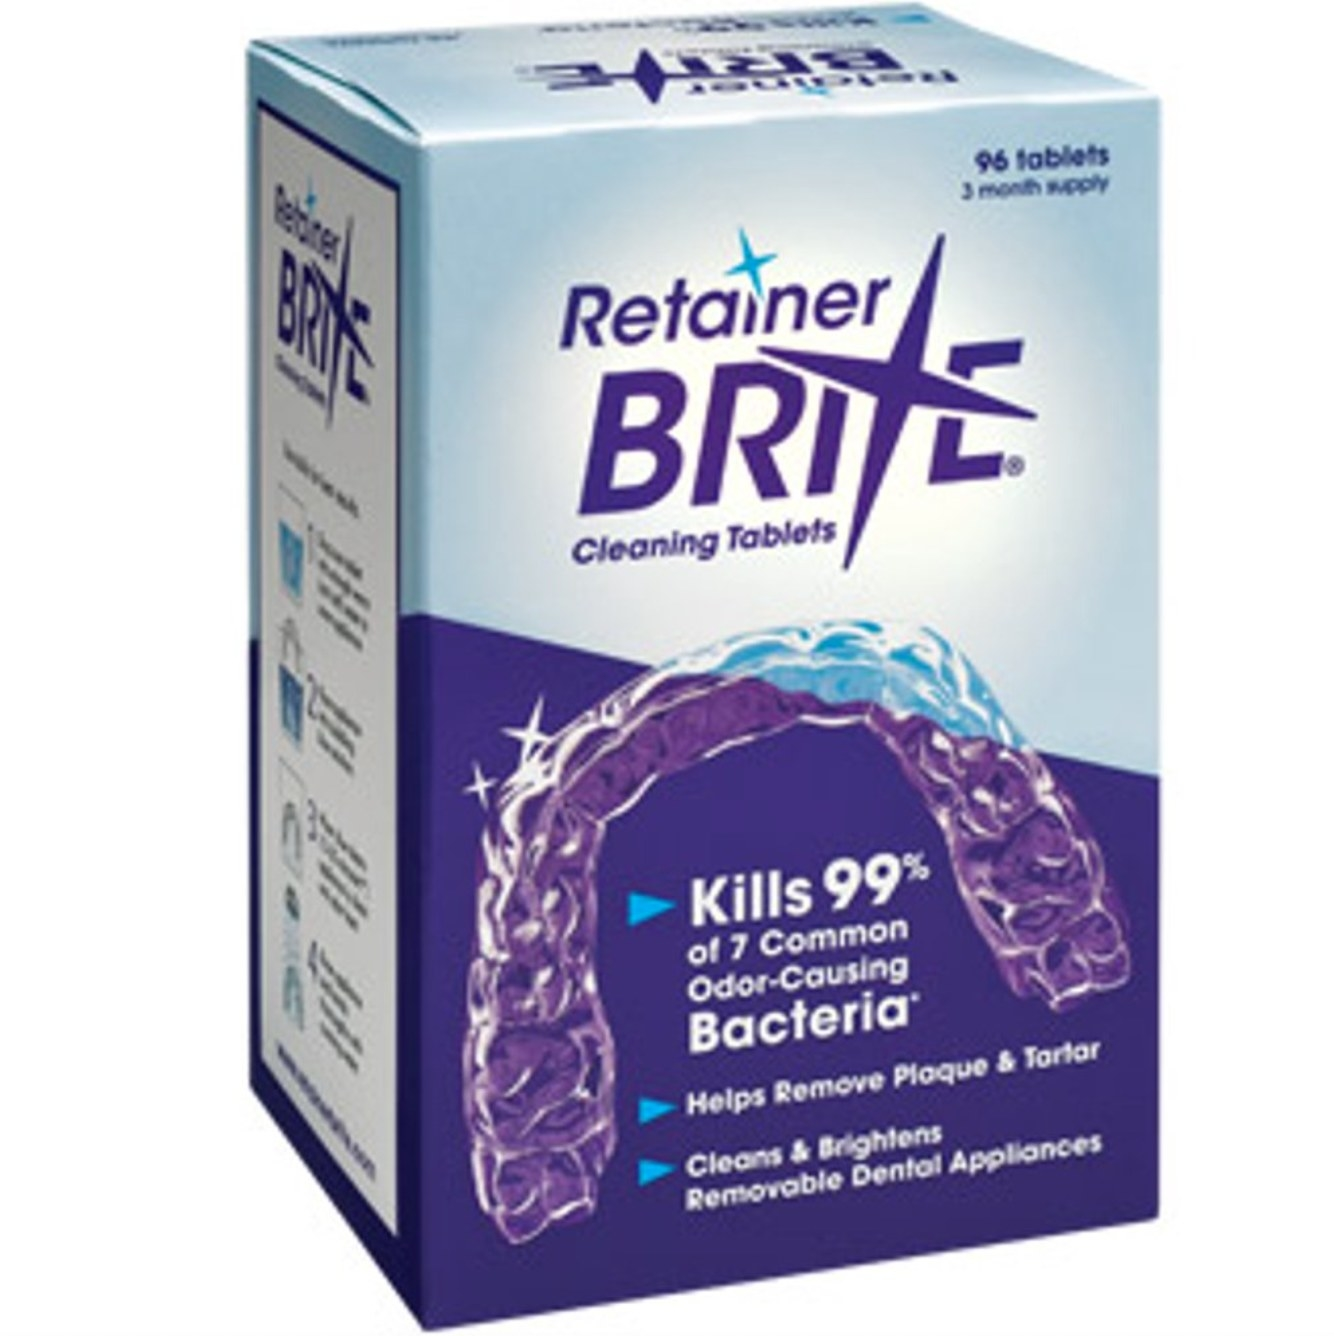 The retainer cleaner in its blue and purple packaging